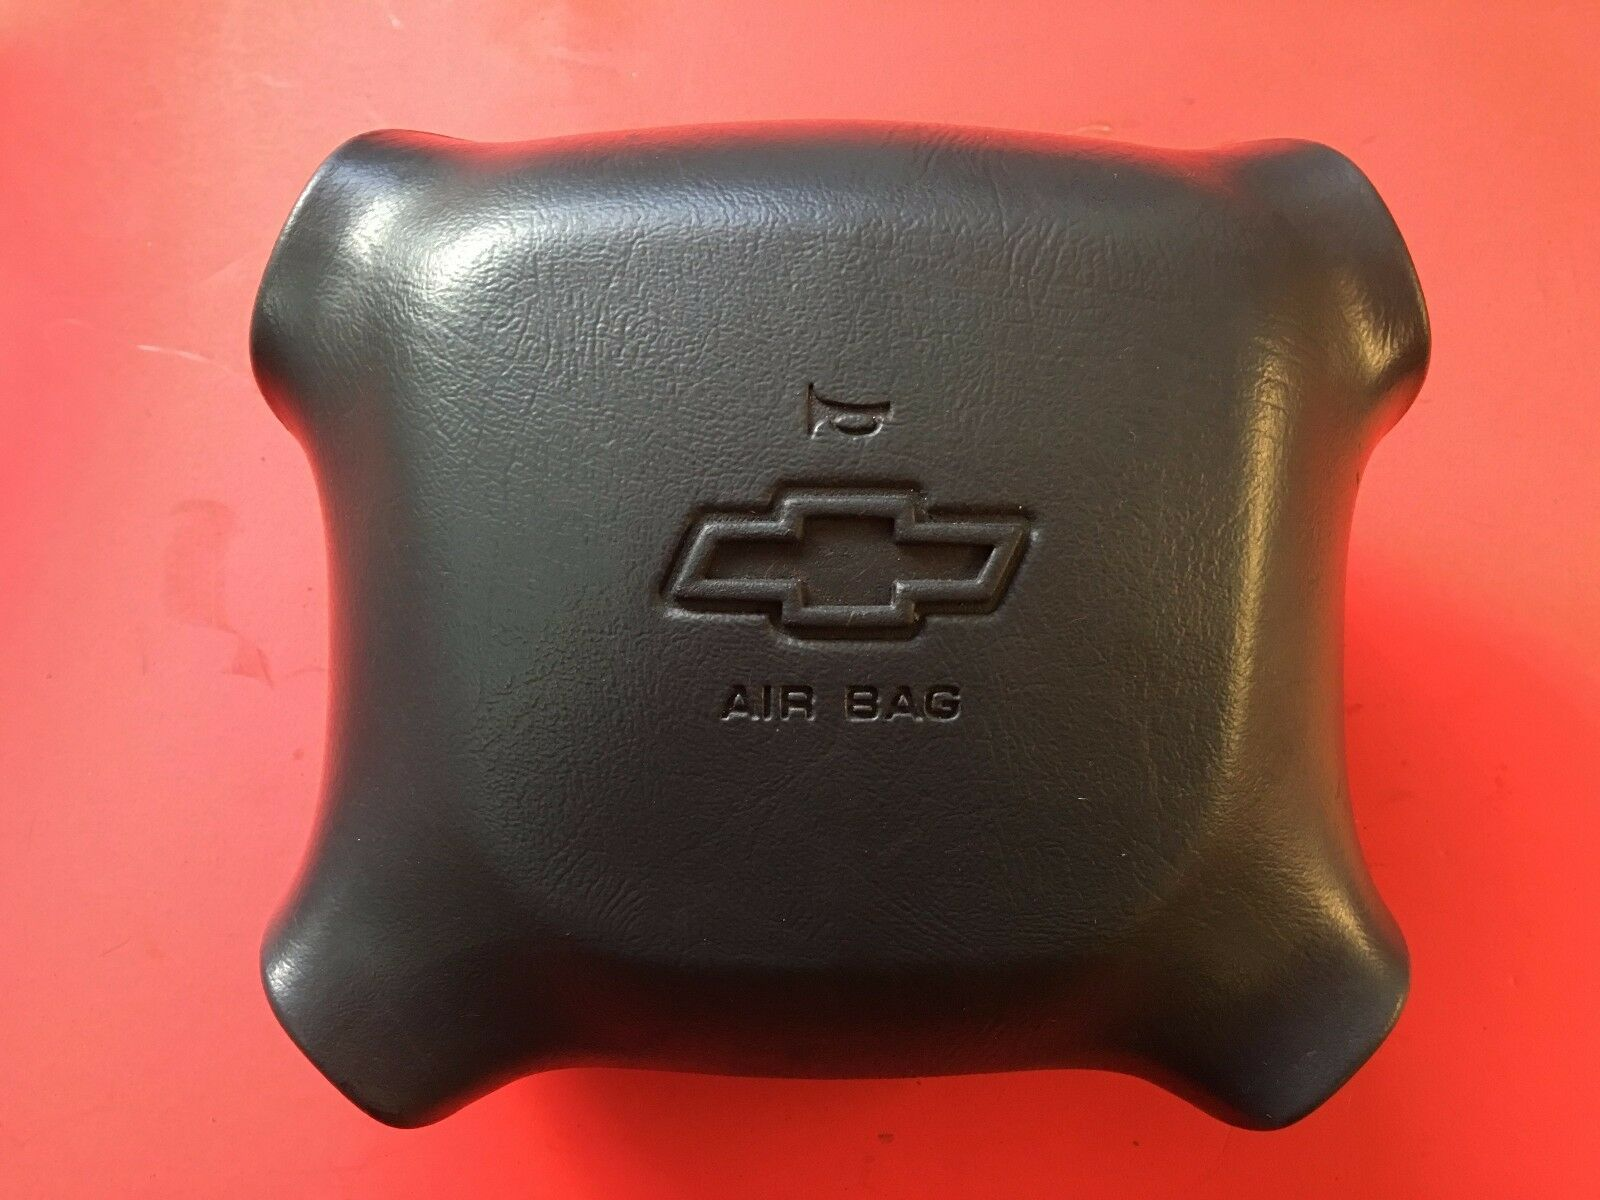 1999 2005 gm chevy s10 blazer driver air bag oem gray ebay picture 1 of 2 sciox Choice Image